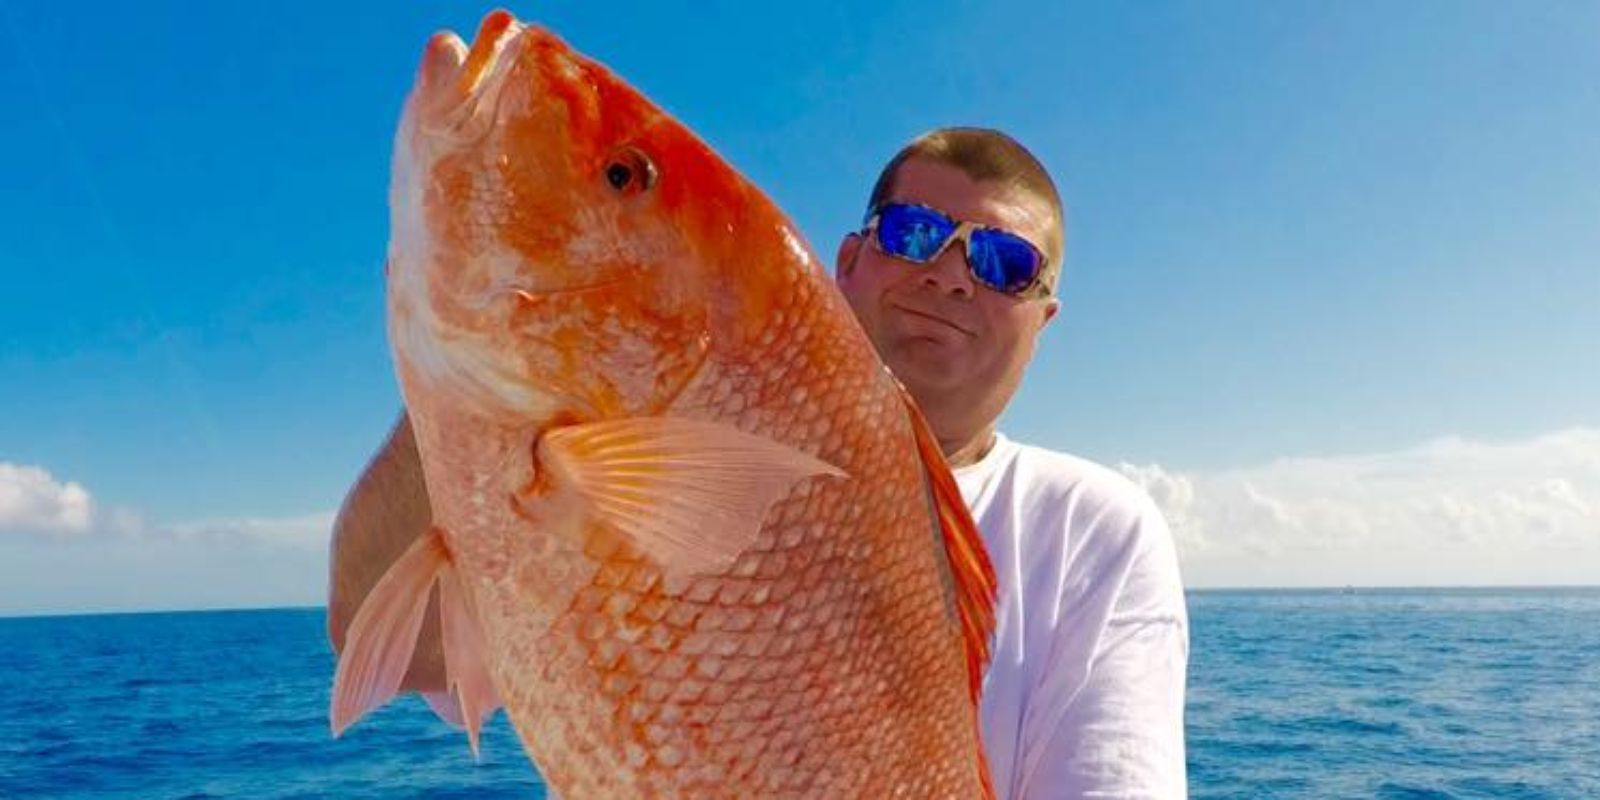 Red snapper length weight chart frozen red snapper red snapper you can make your own measurement of red snapper length weight chart with rules and pencil this will help you to compare your red nvjuhfo Images